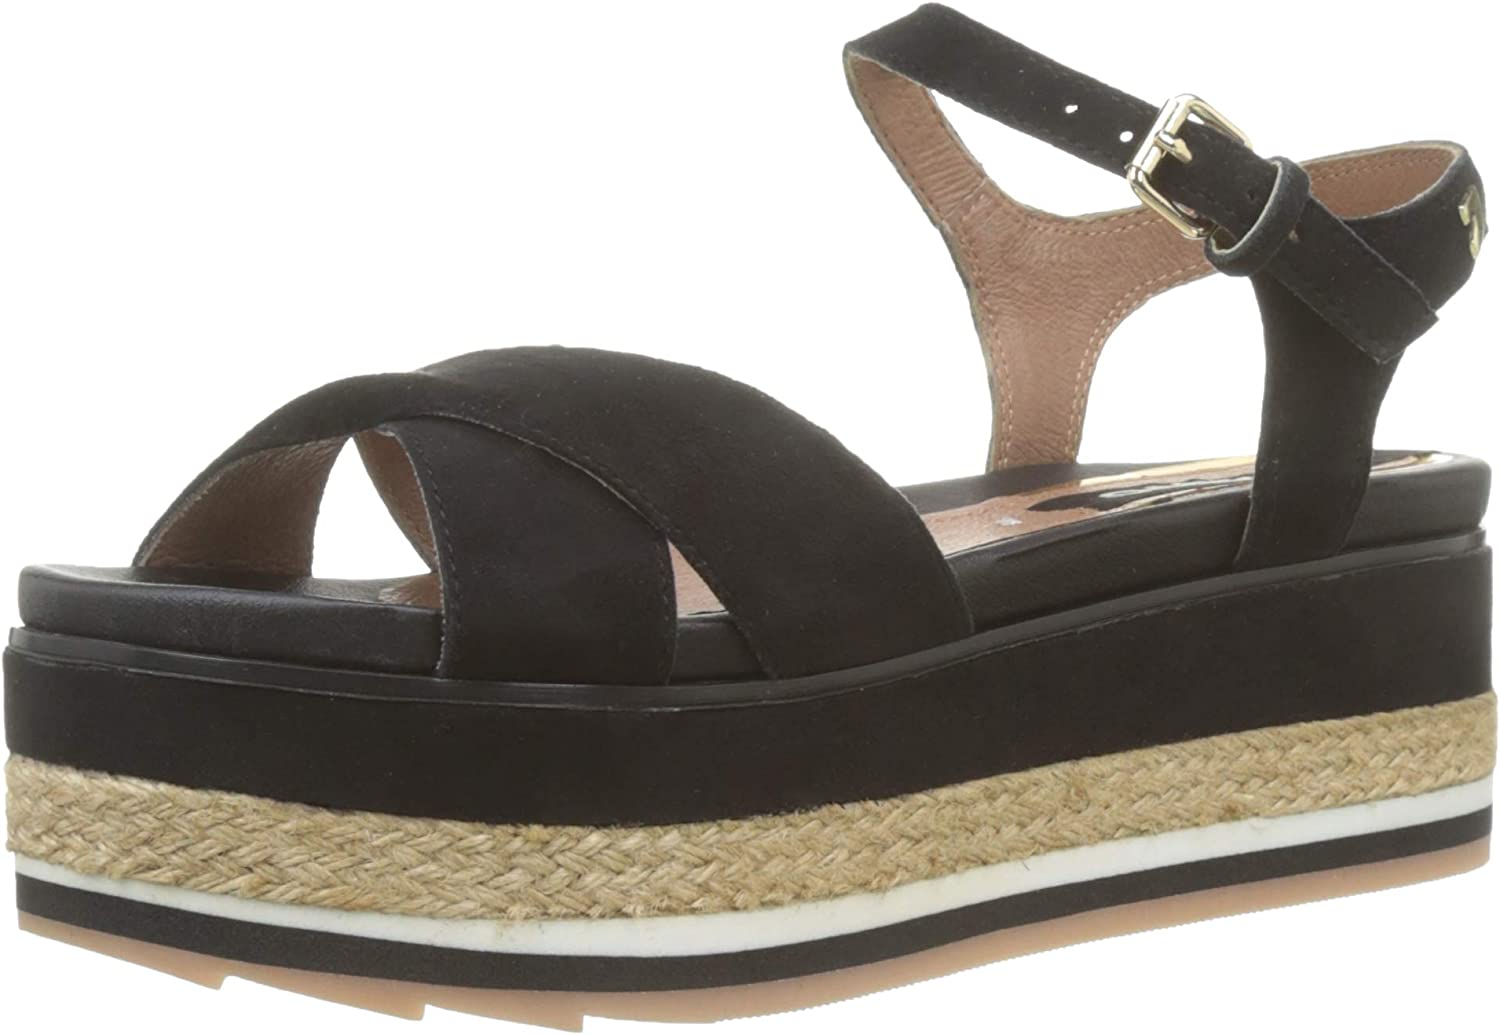 GIOSEPPO women's shoes wedge sandals 48565 LUGA BLACK